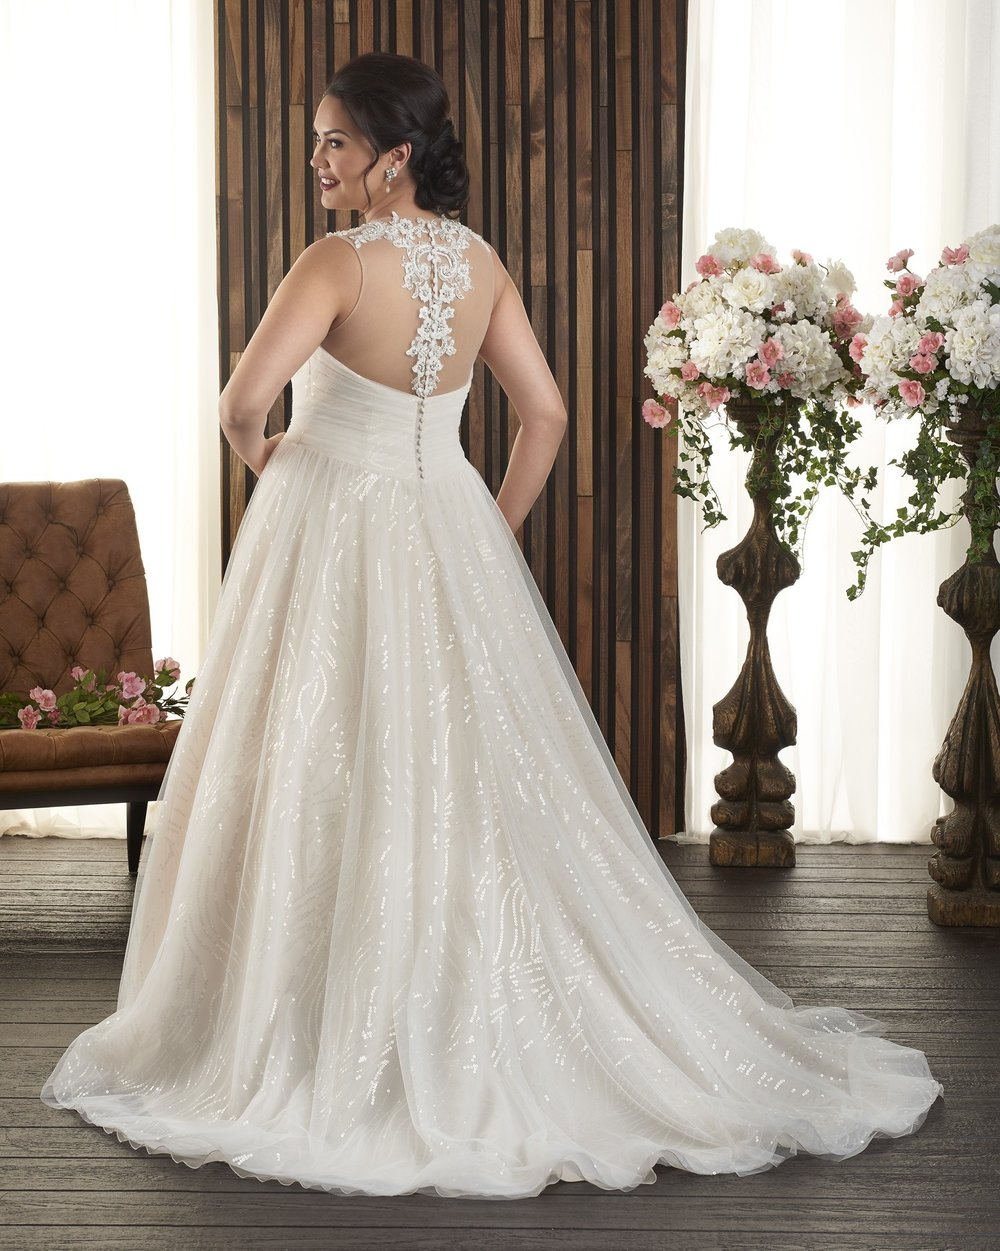 BonnyBridal-BridesbyYoung-PlusSizeWeddingDress-1725-1.jpg